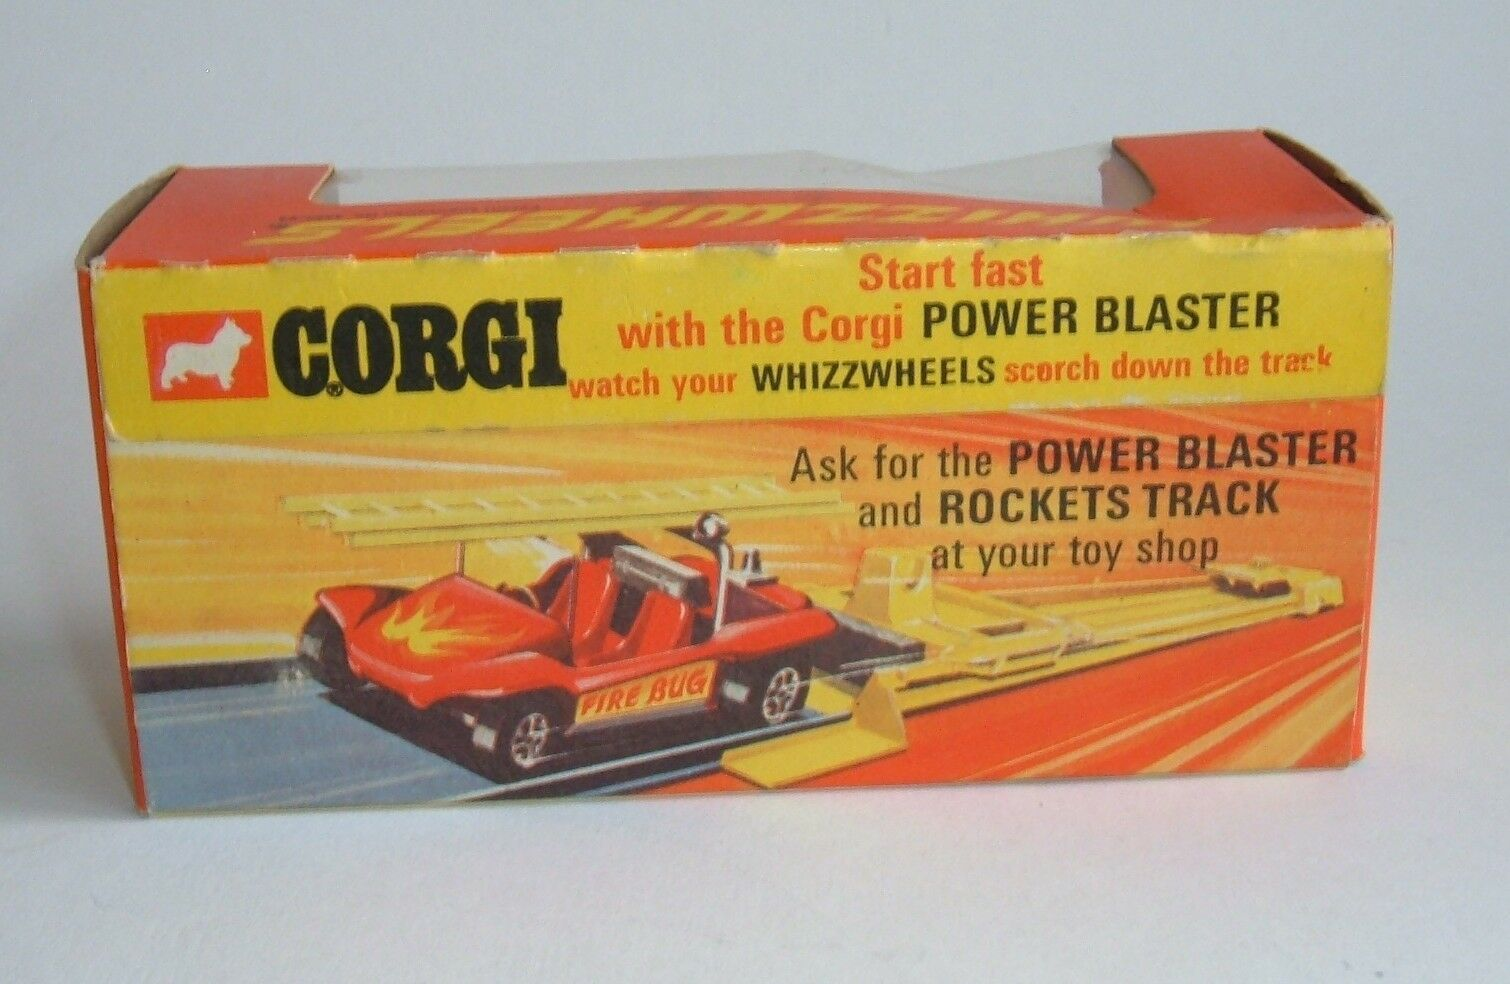 Corgi Toys No. 395, Whizzwheels 'Fire Bug', Bug', Bug', - Superb Mint. 0cada1